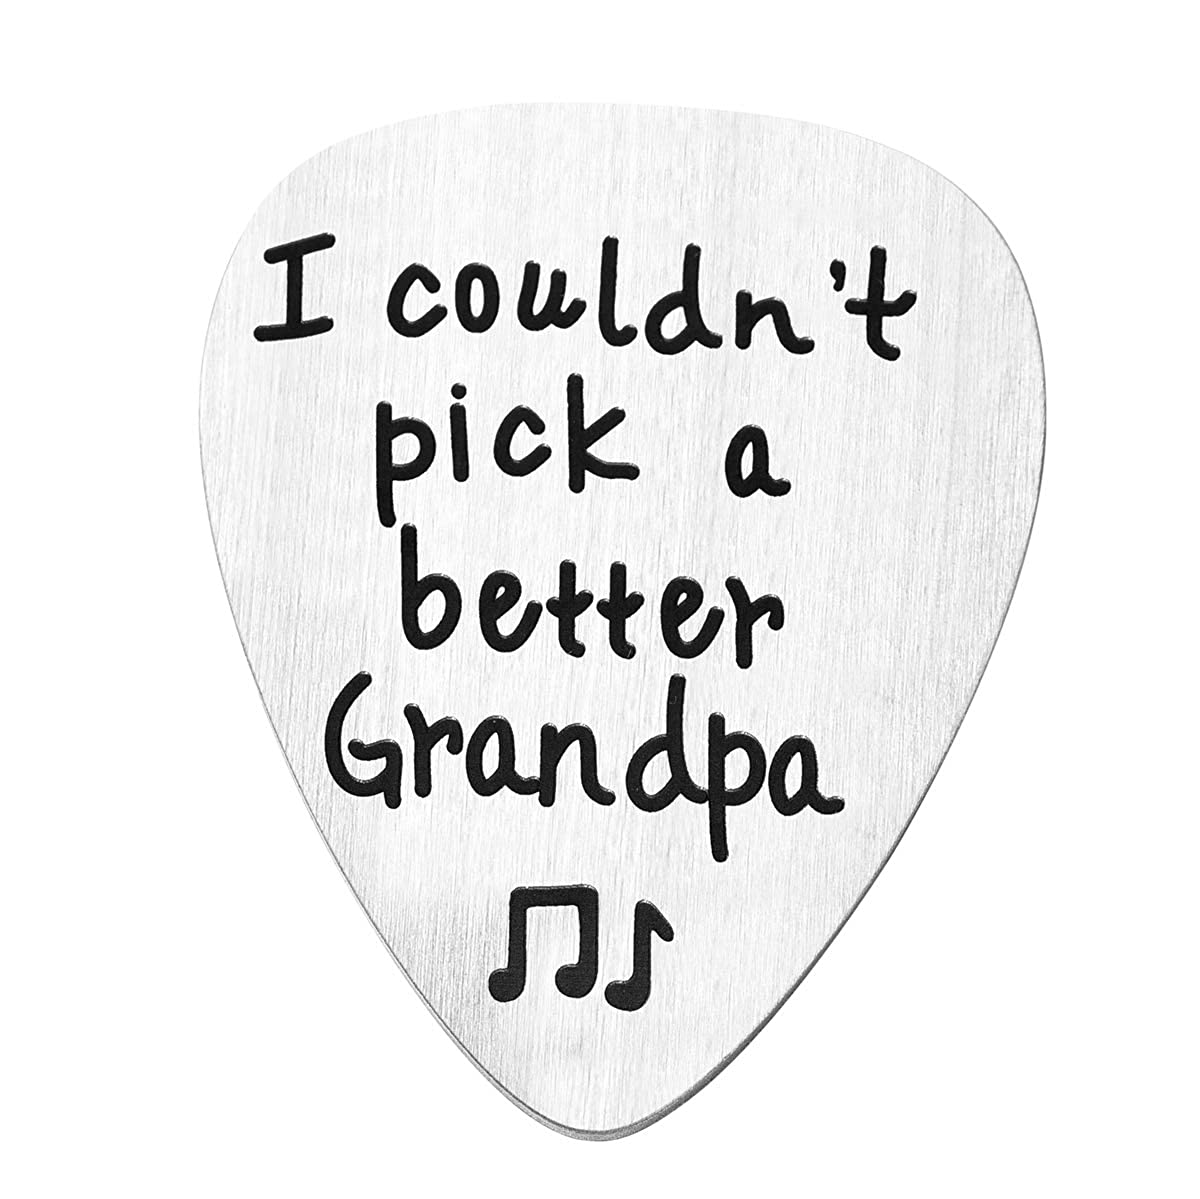 JZSTA Guitar Pick Gifts for Grandpa I Couldnt Pick a Better Grandpa